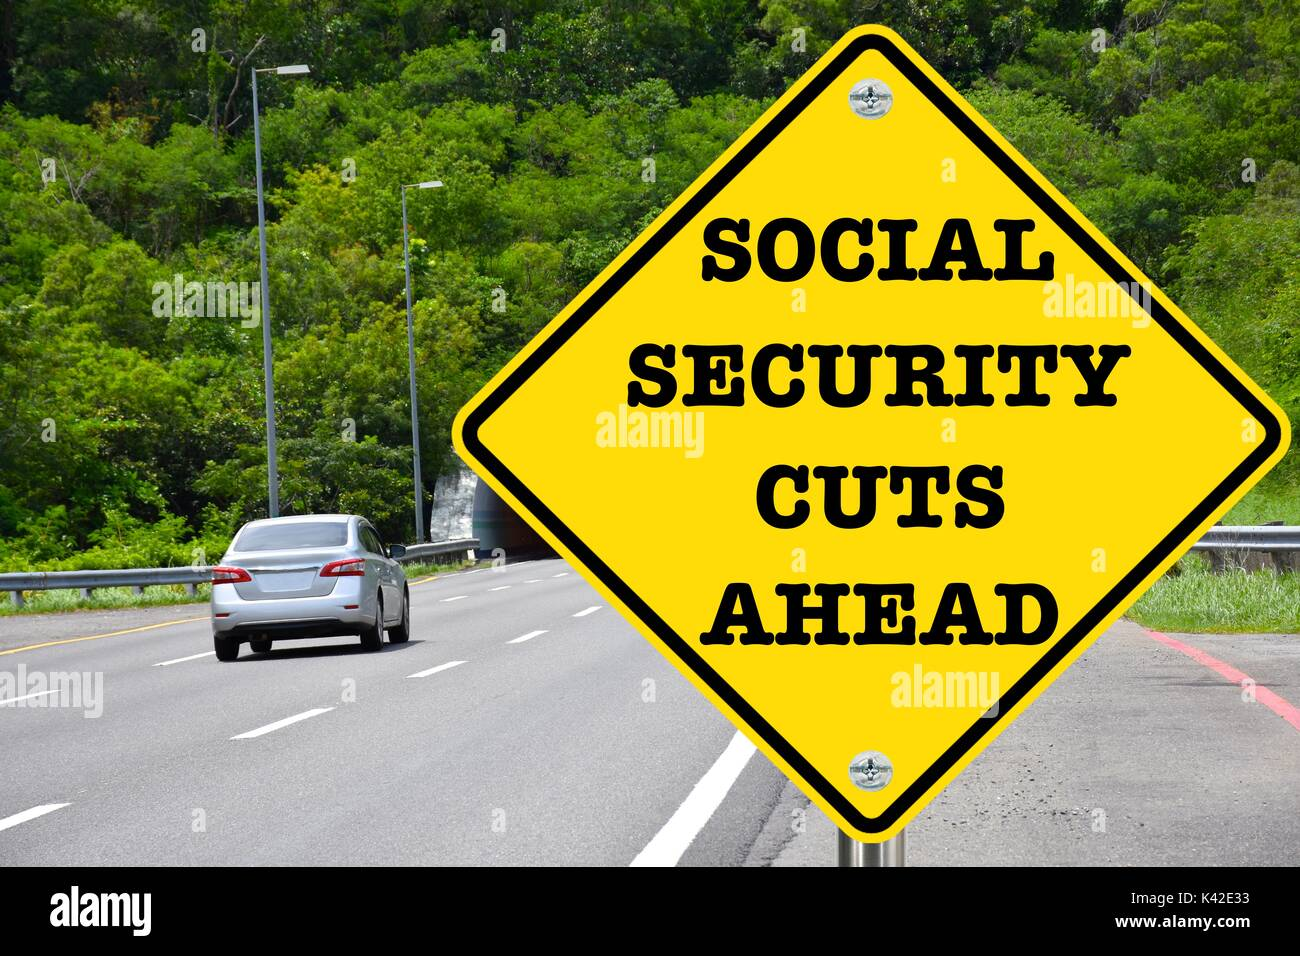 Social Security Cuts Ahead, yellow warning road sign - Stock Image